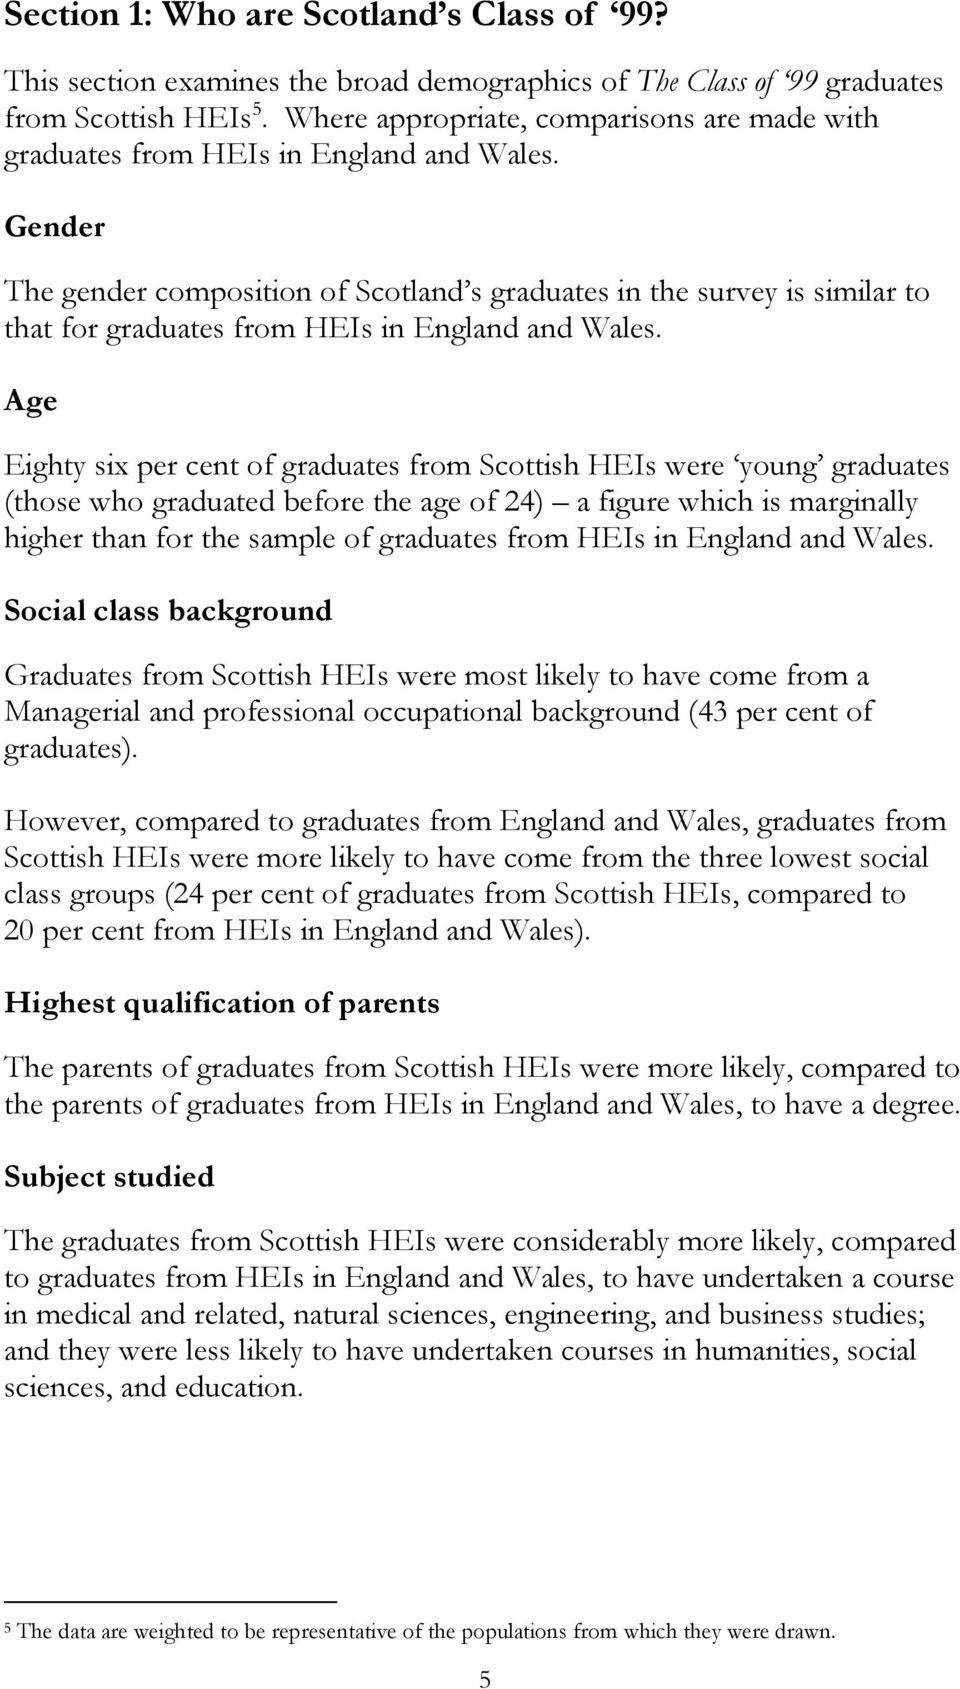 Gender The gender composition of Scotland s graduates in the survey is similar to that for graduates from HEIs in England and Wales.